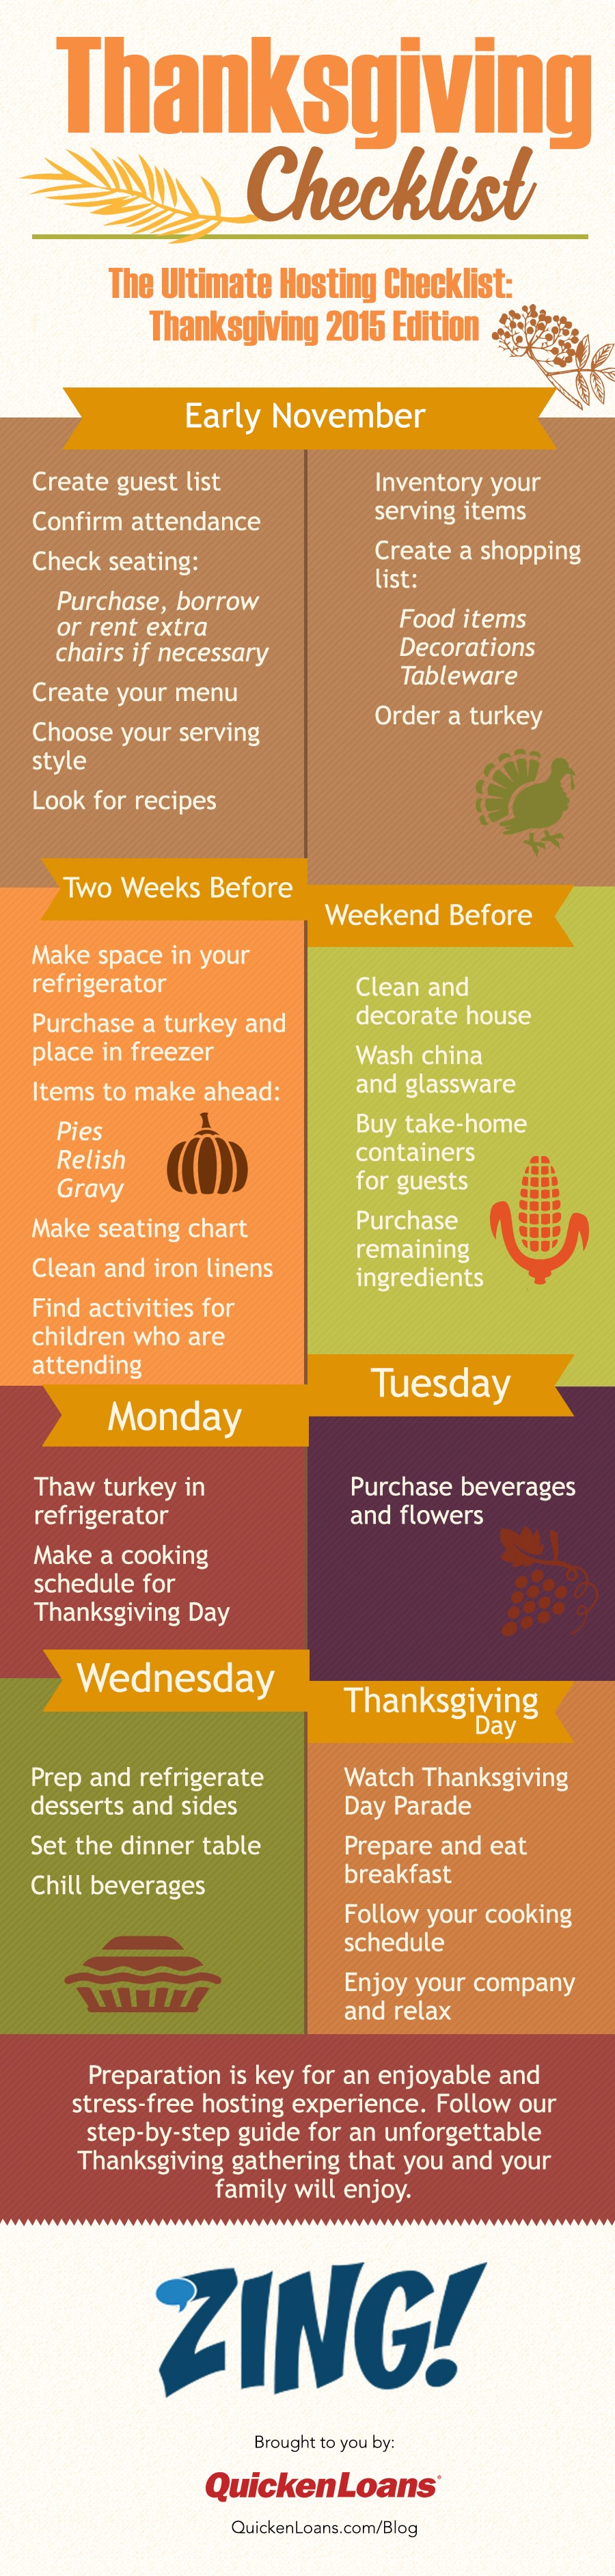 The Ultimate Hosting Checklist: Thanksgiving 2015 Edition - Quicken Loans Zing Blog